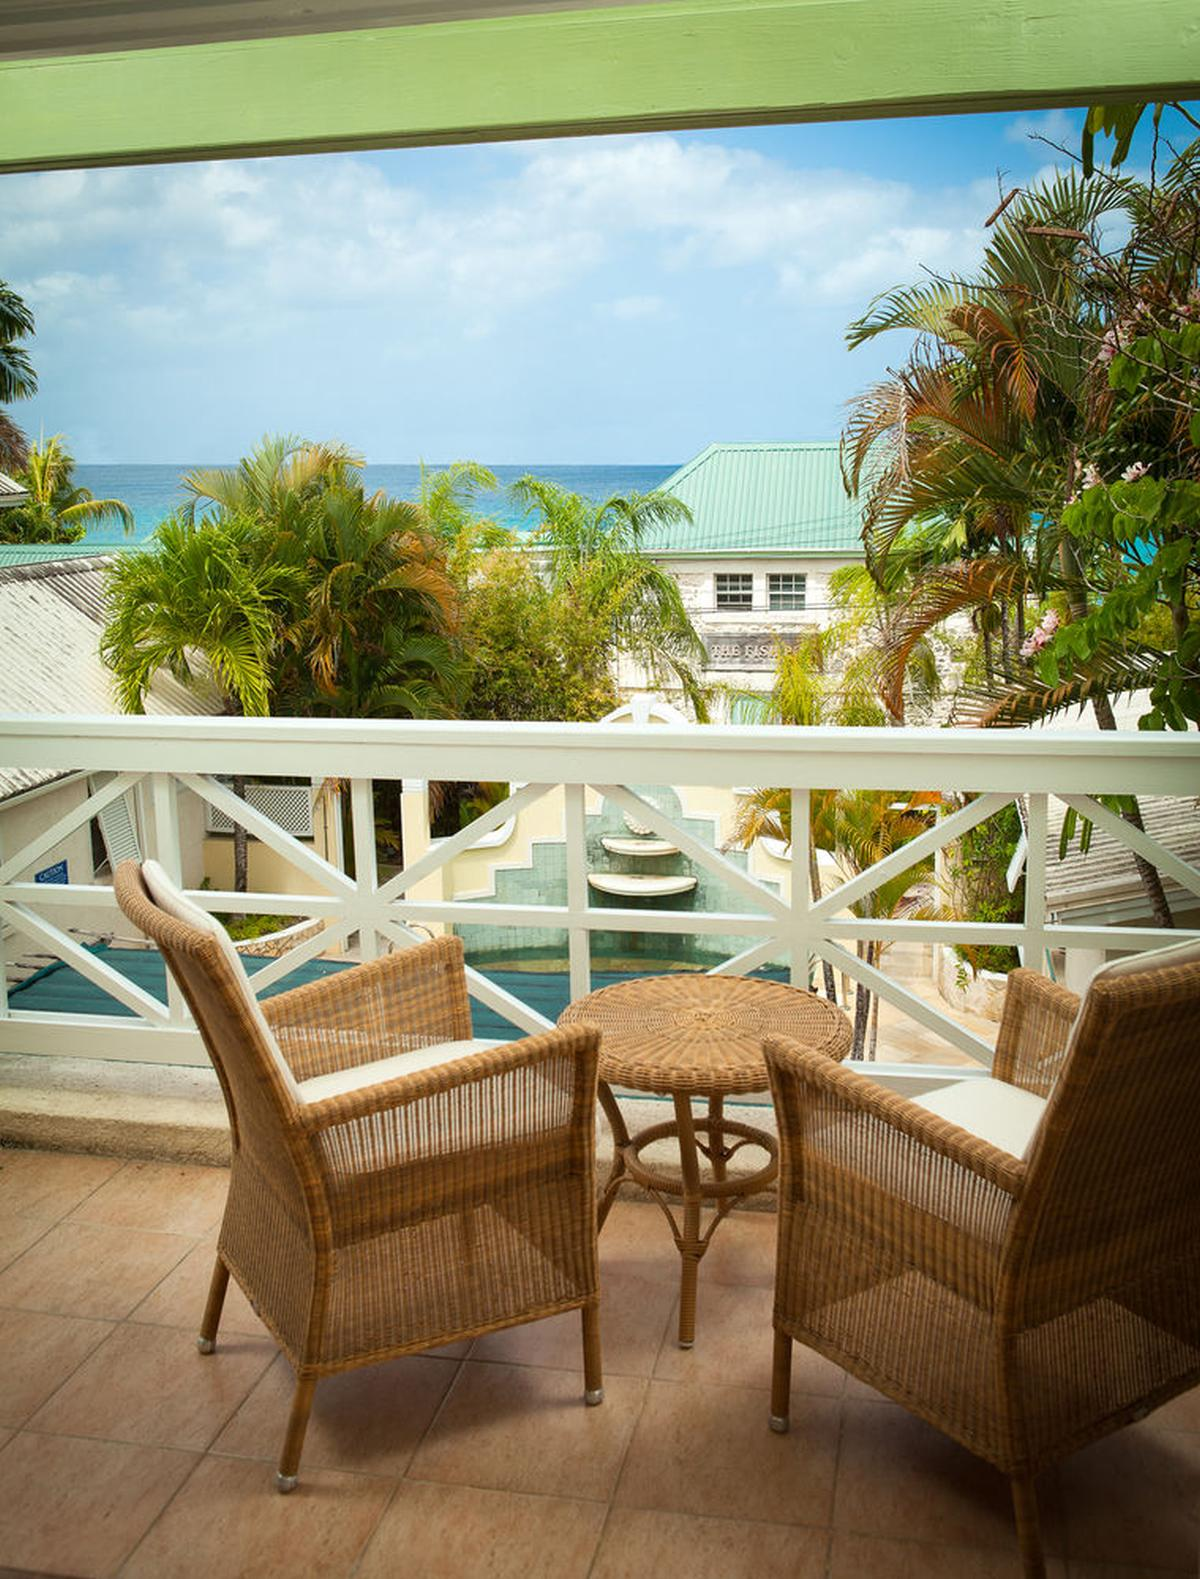 content/hotel/Barbados hotelek/Little Good Harbour/Accommodation/One Bedroom Suite/littlegoodharbour-acc-onebedroomsuite-05.jpg